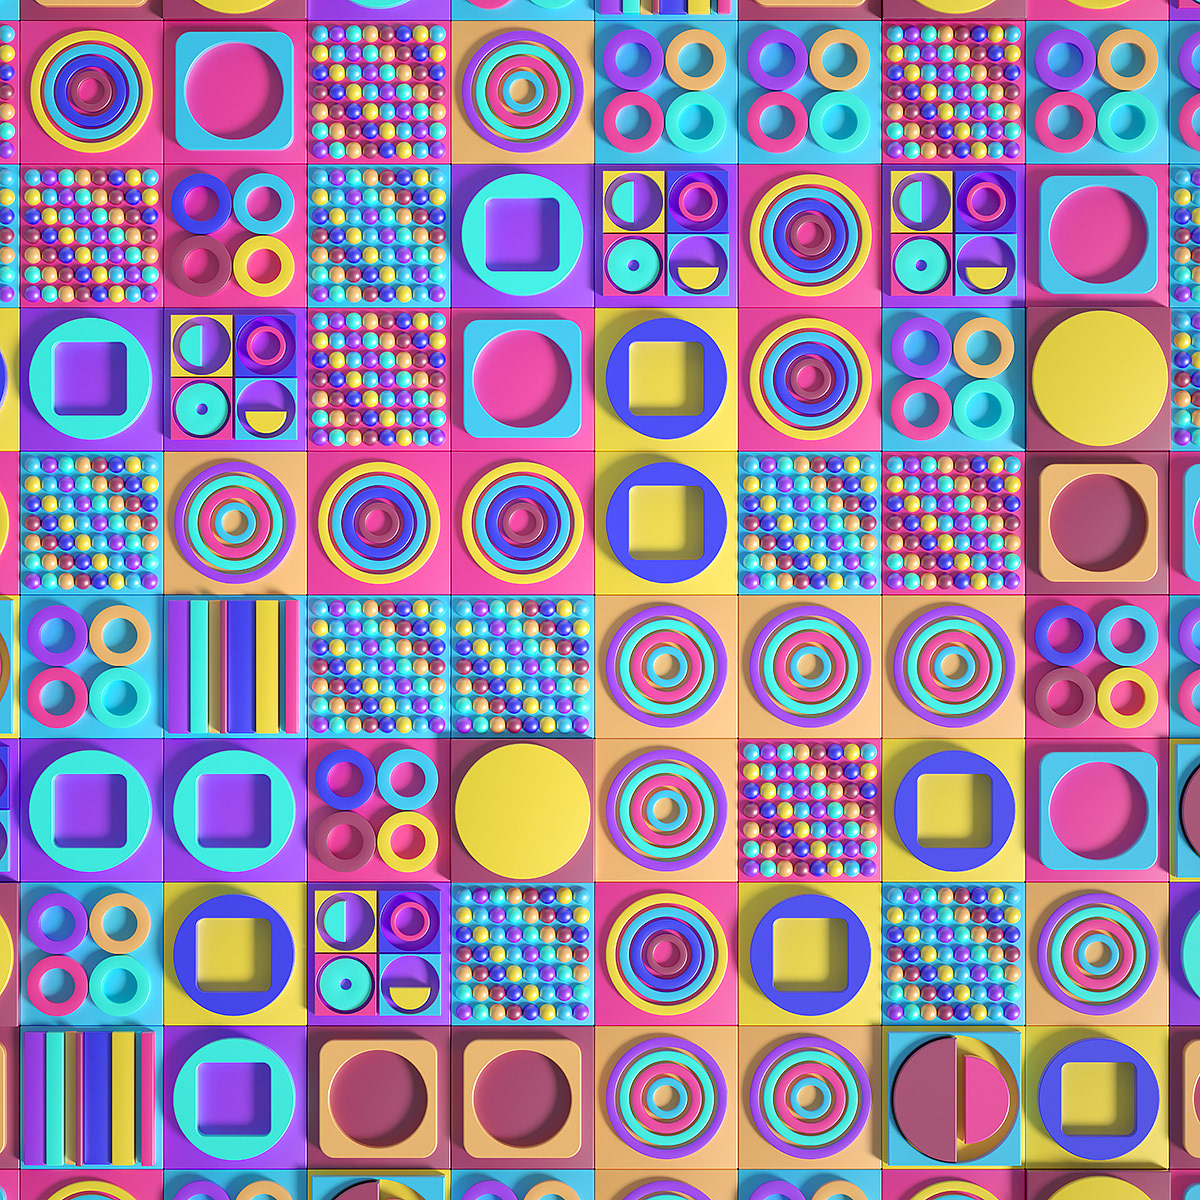 Image may contain: pattern, colorfulness and magenta